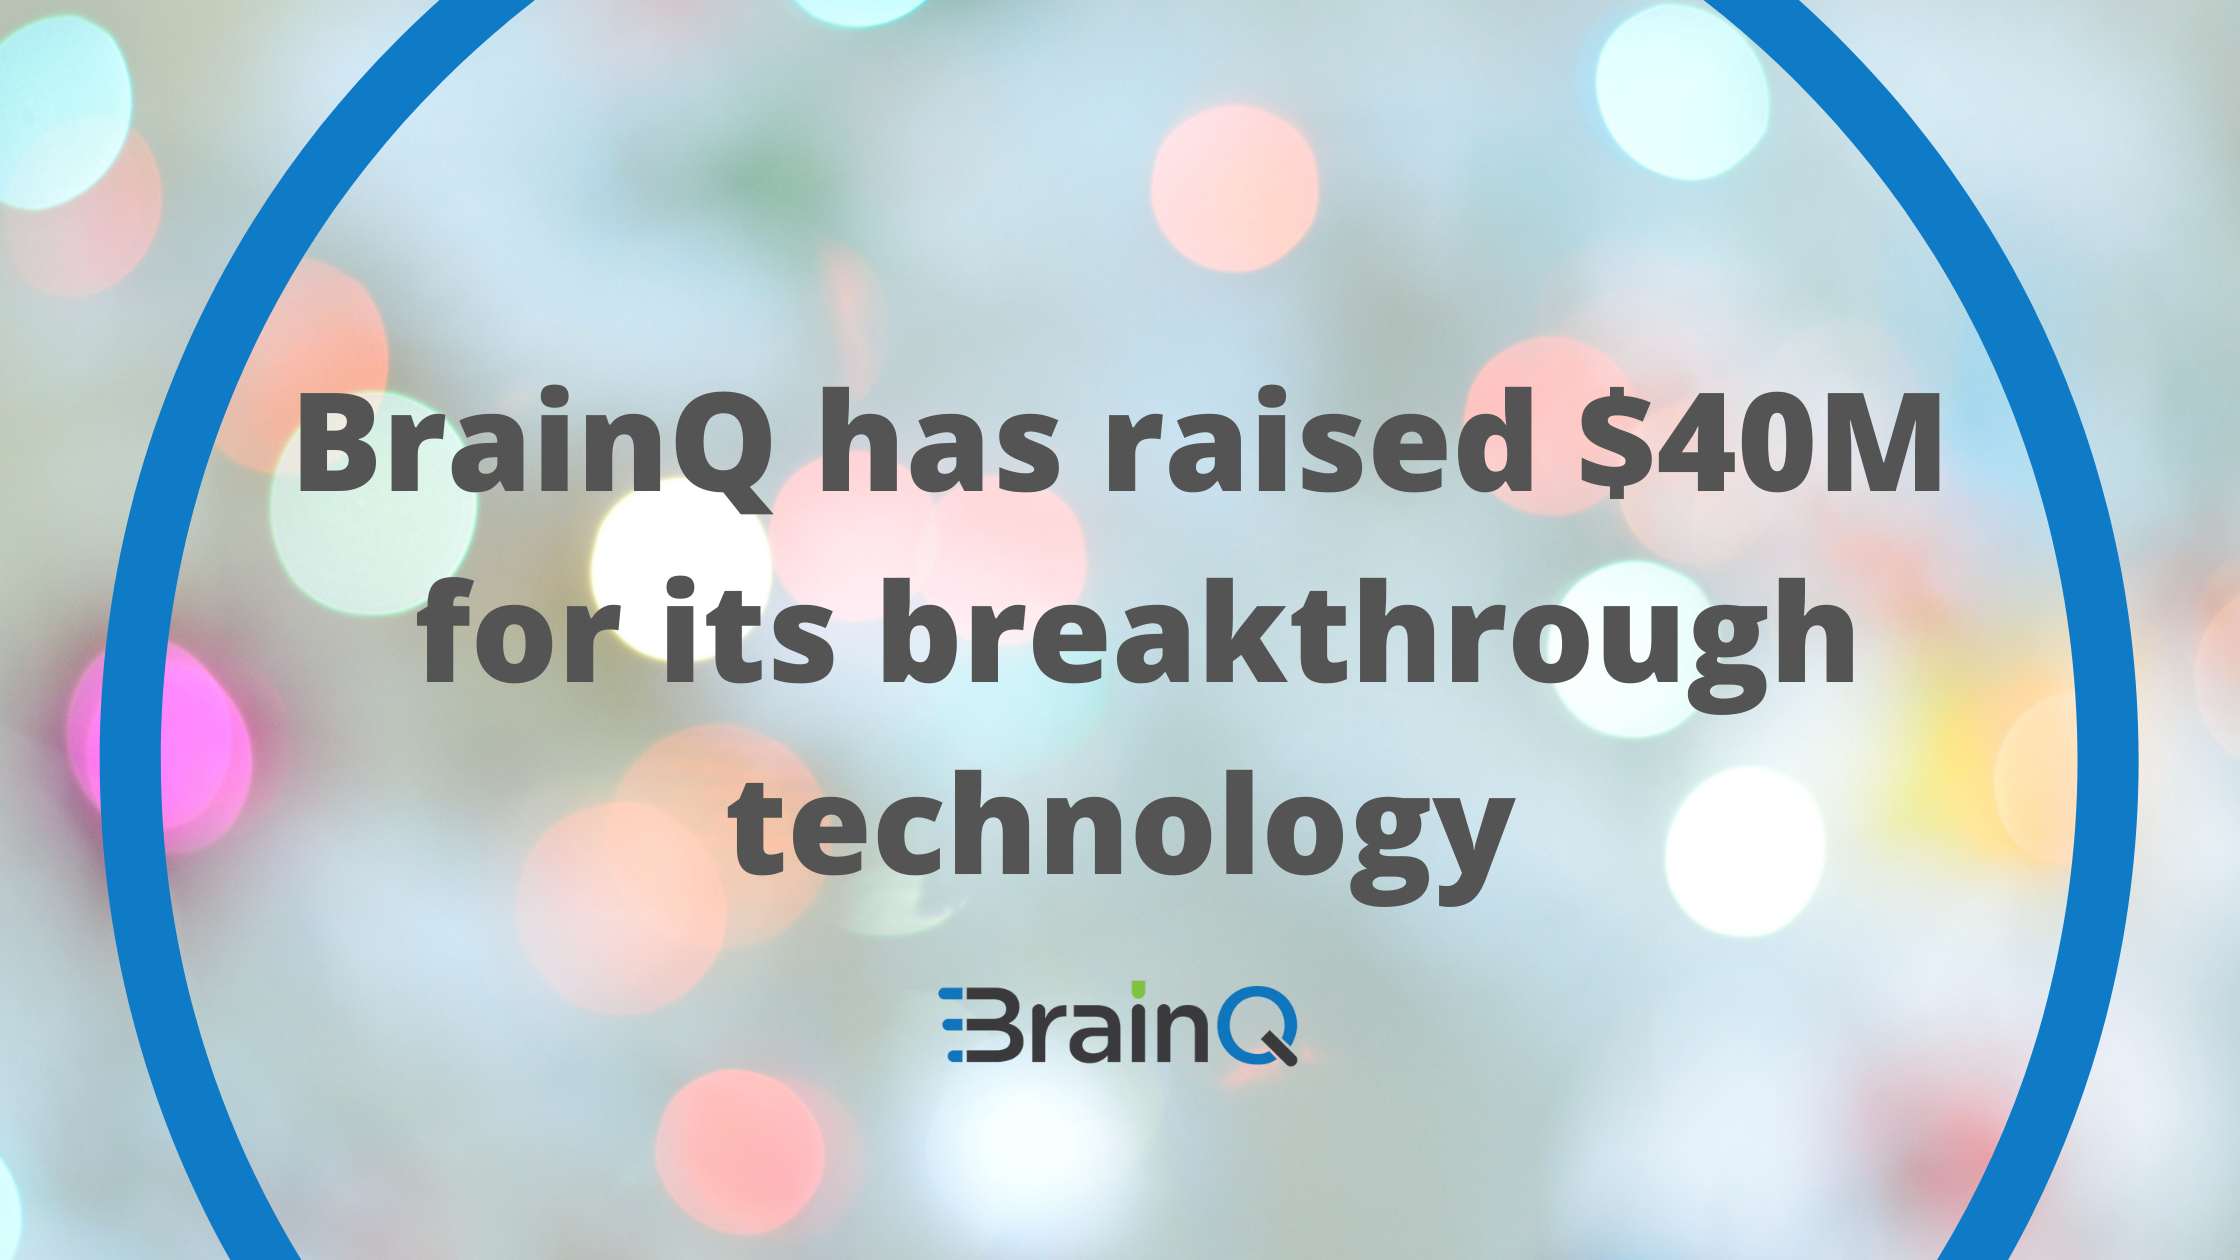 NEWS UPDATE: Breakthrough Israeli stroke therapy technology BrainQ announces a $40M funding round